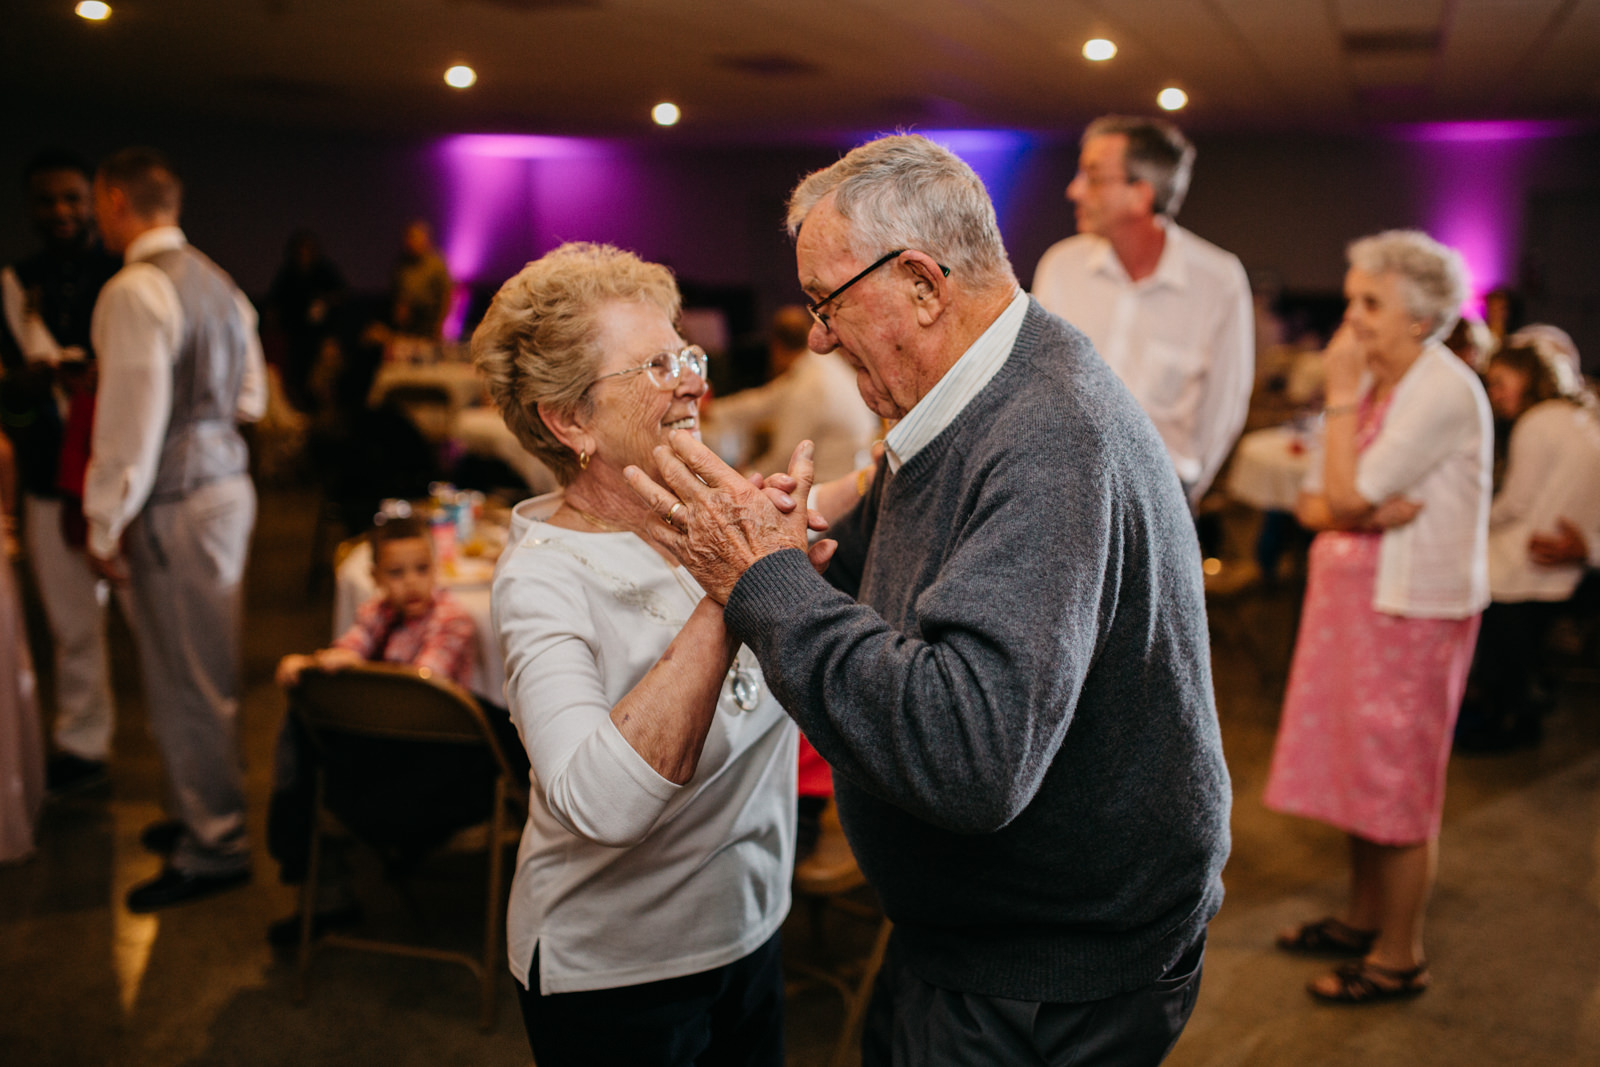 Married couple slow dance at wedding reception